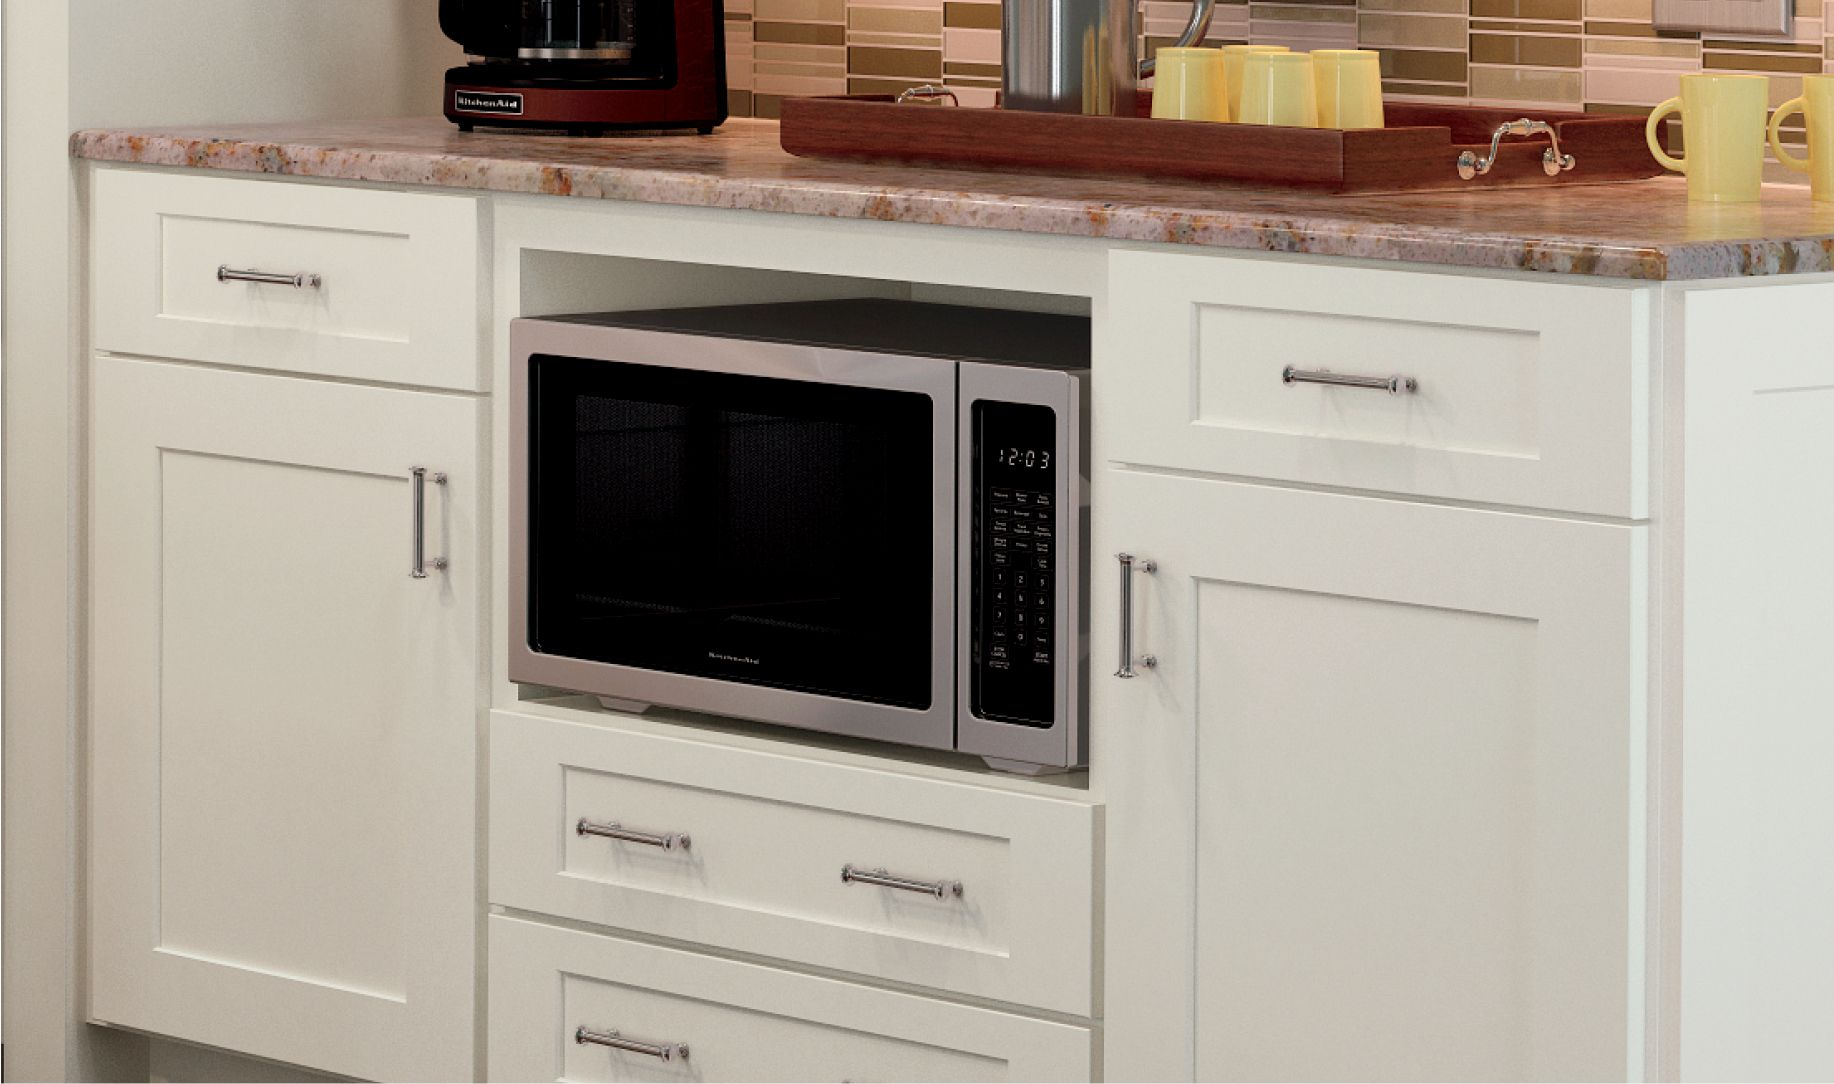 Base Microwave Cabinet Allen Roth Microwave Cabinet Microwave Shelf Base Cabinets